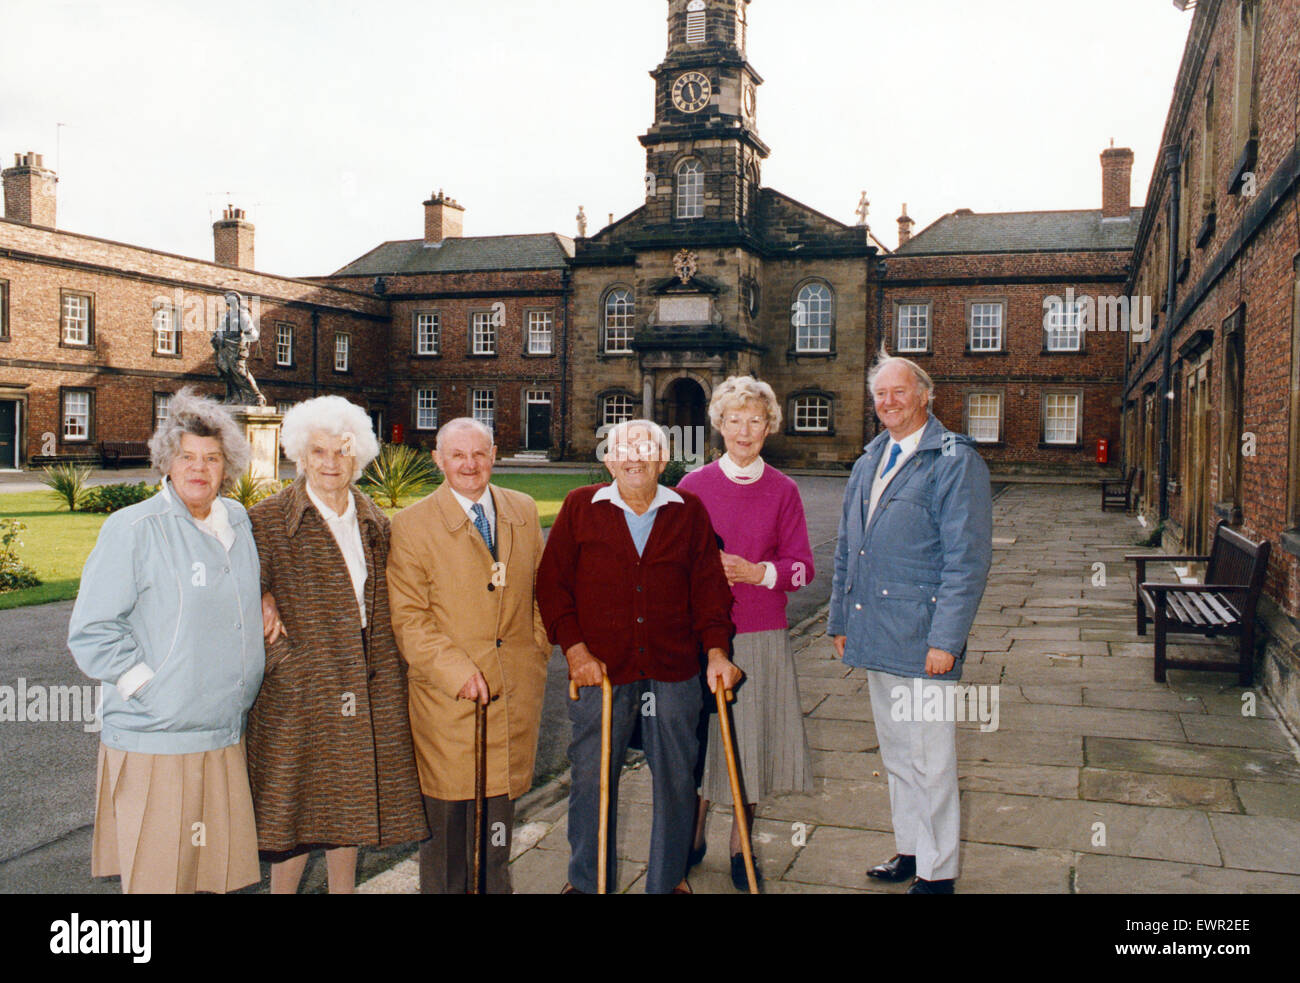 Residents of the Sir William Turner Hospital with Alan Wordsworth, right, clerk to the trustees. 3rd November 1991. - Stock Image